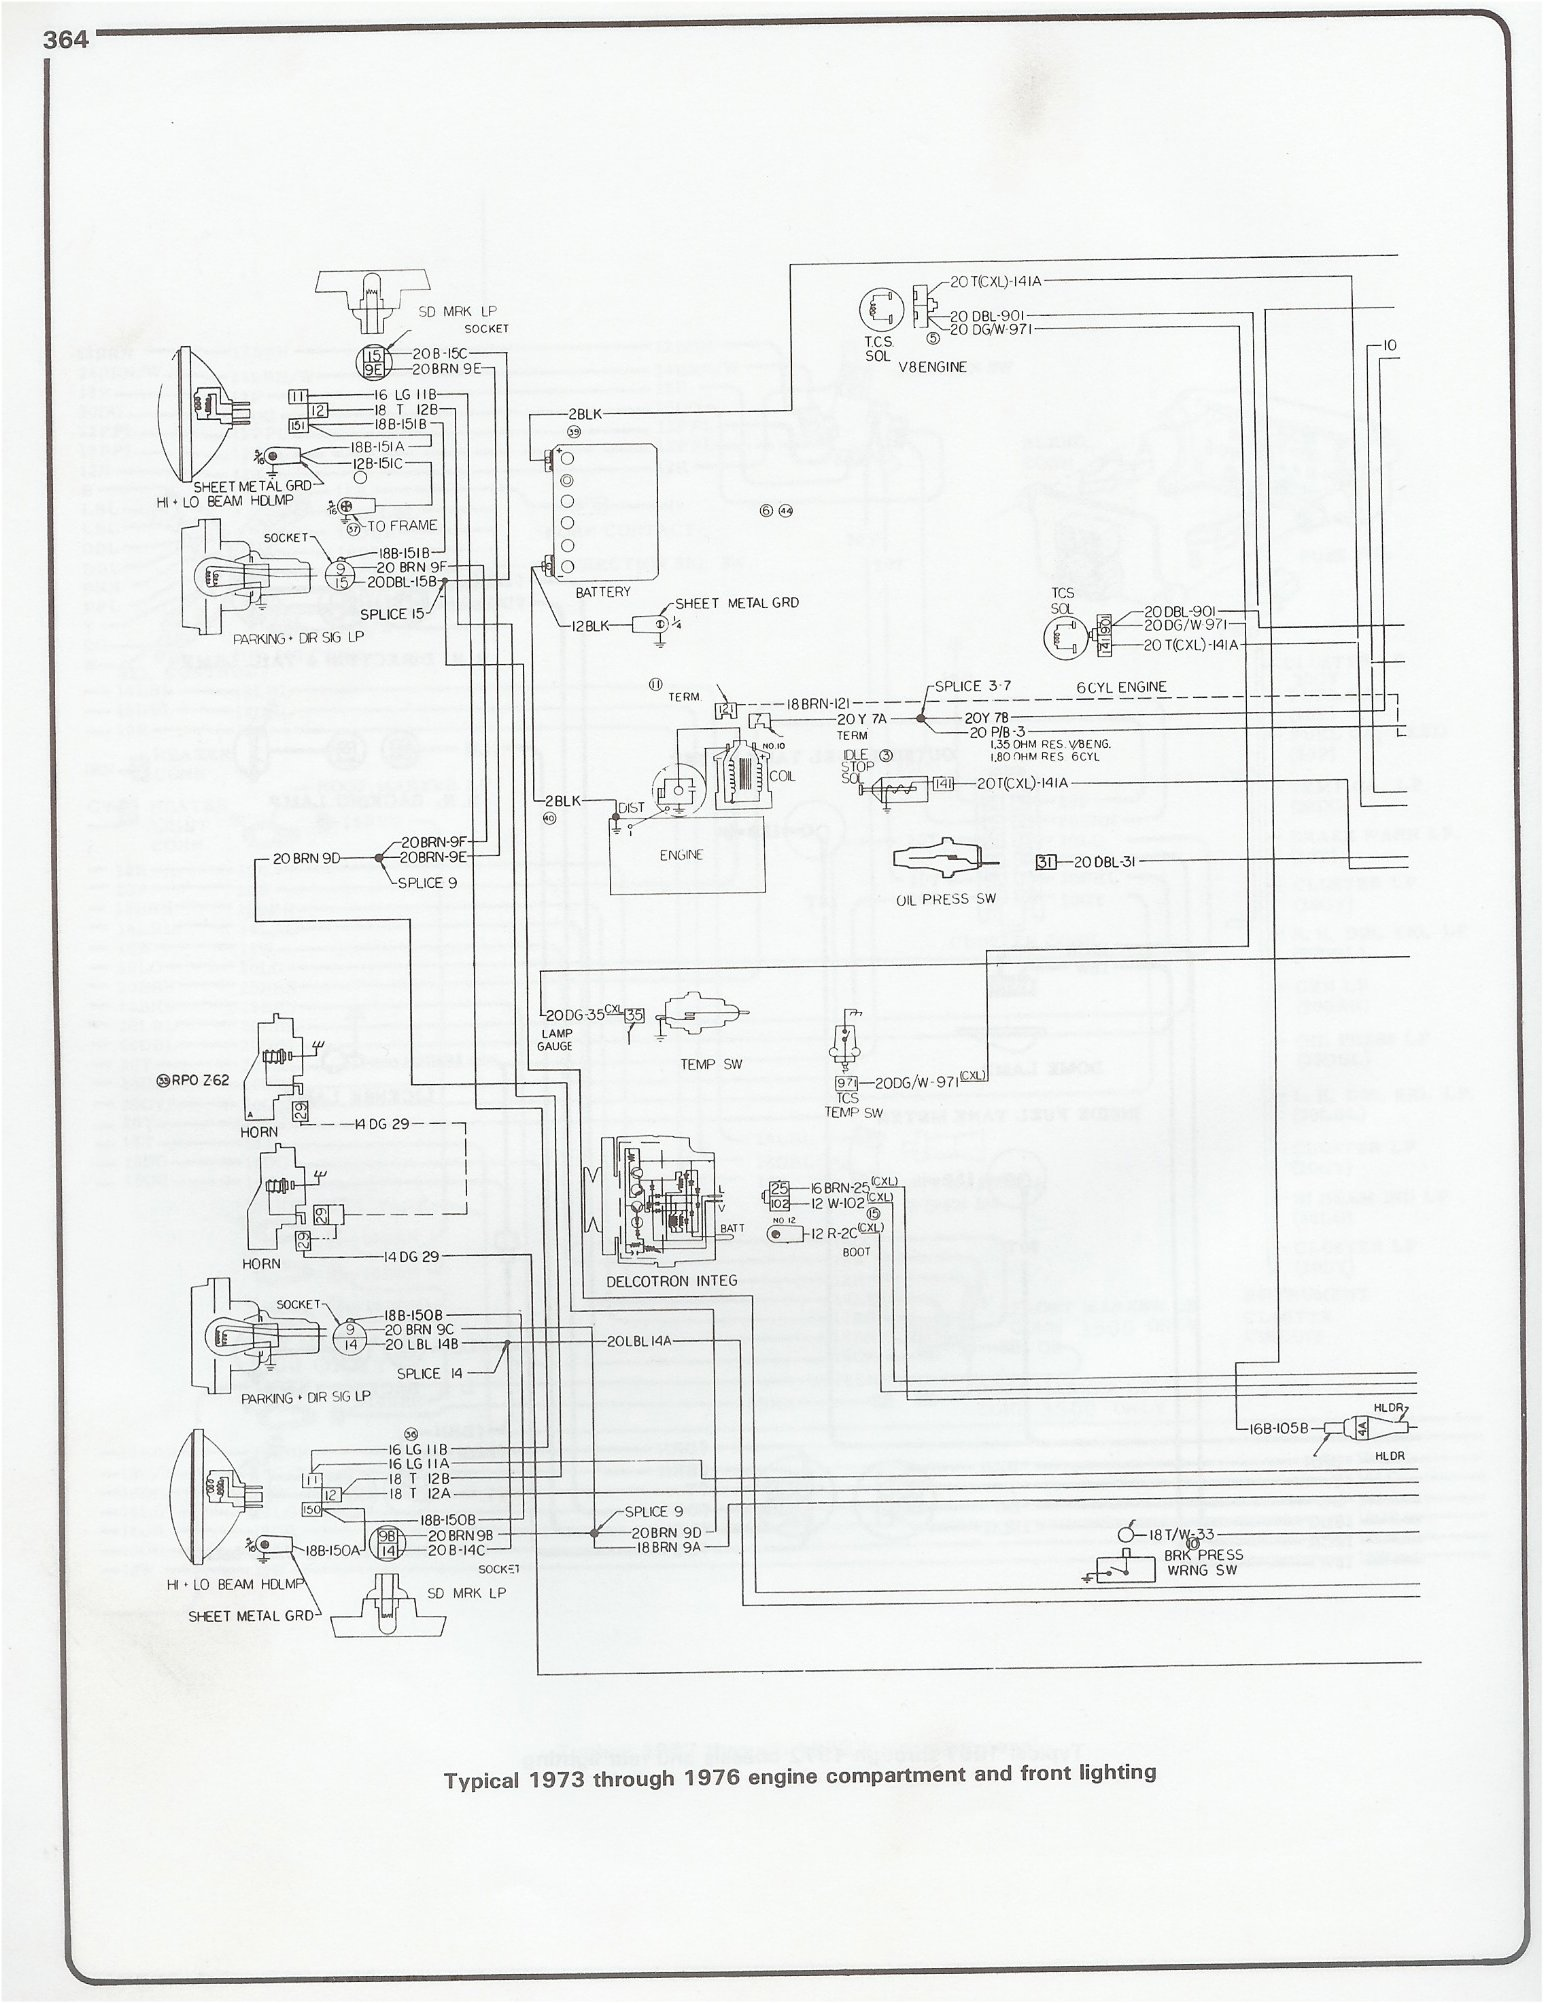 78 Scottsdale Headlight Wiring Diagram All Motorcycle 4 Wires Complete 73 87 Diagrams Led 76 Engine And Front Lighting